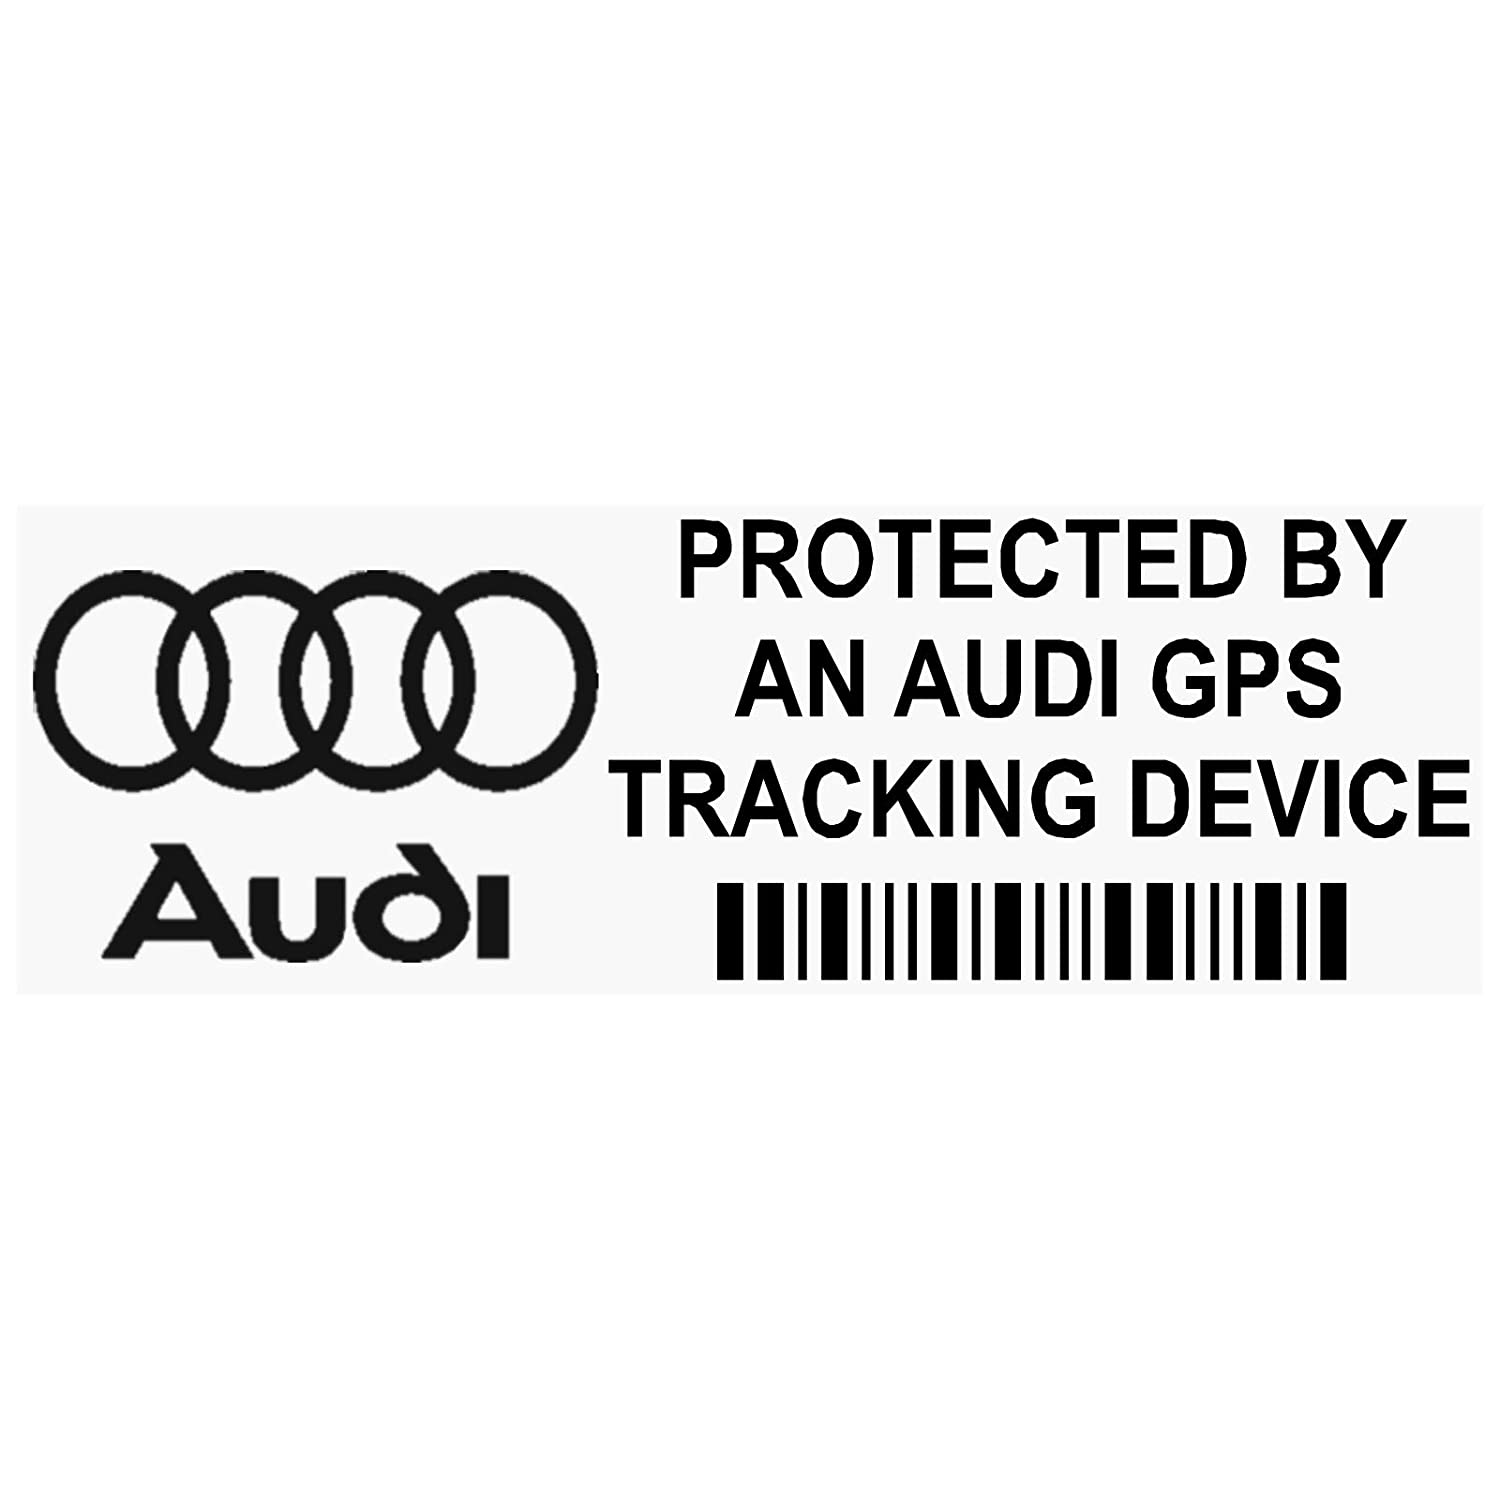 Platinum Place 5 x PPAUDIGPSBLK GPS BLACK Tracking Device Security WINDOW Stickers 87x30mm-Car, Van Alarm Tracker